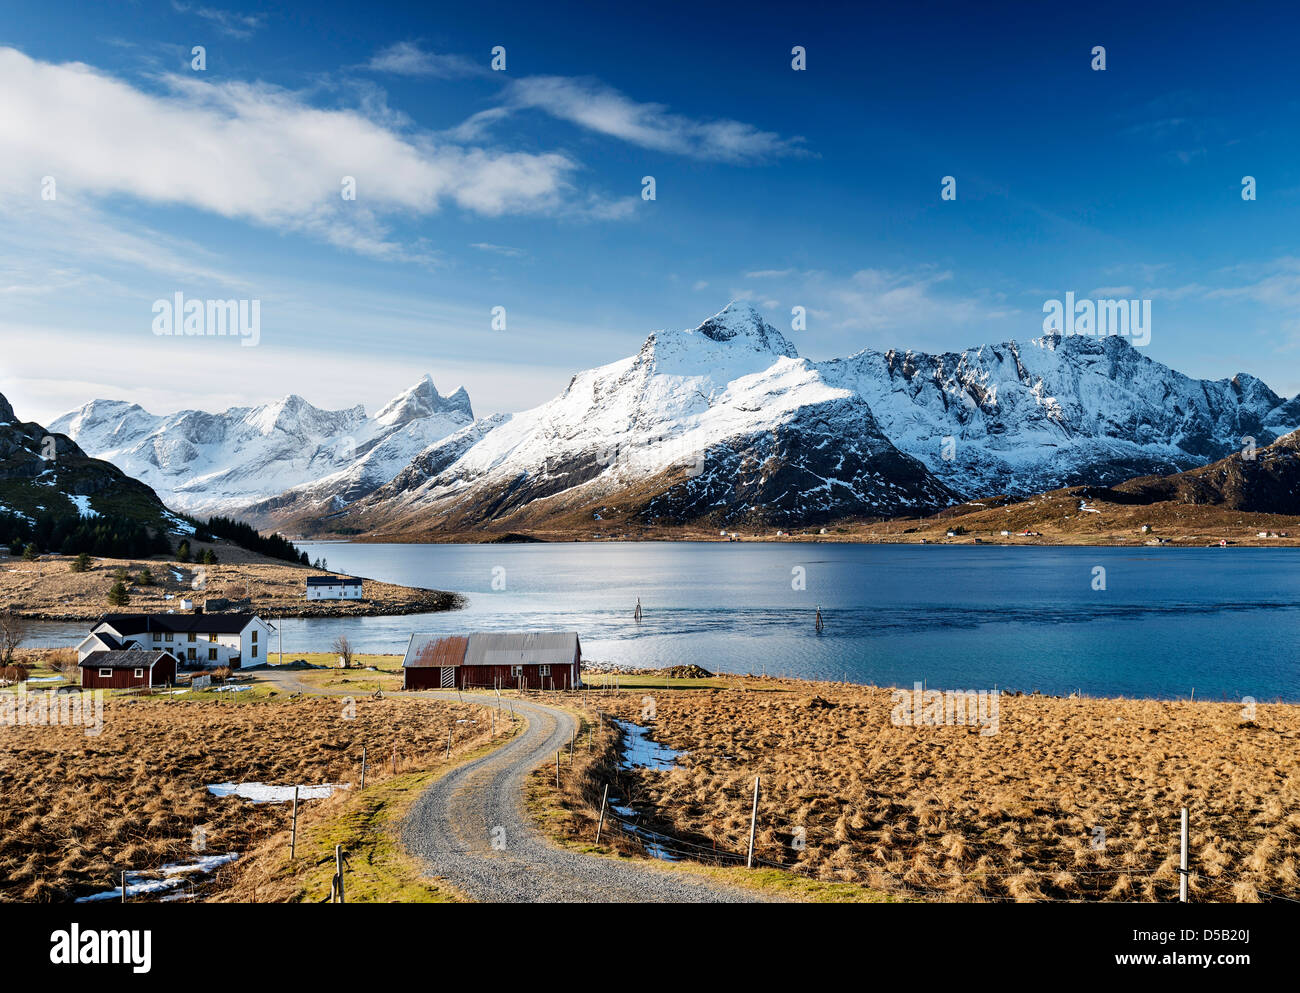 A view looking up Selfjorden from Straumsnes on the Lofoten islands, Norway - Stock Image